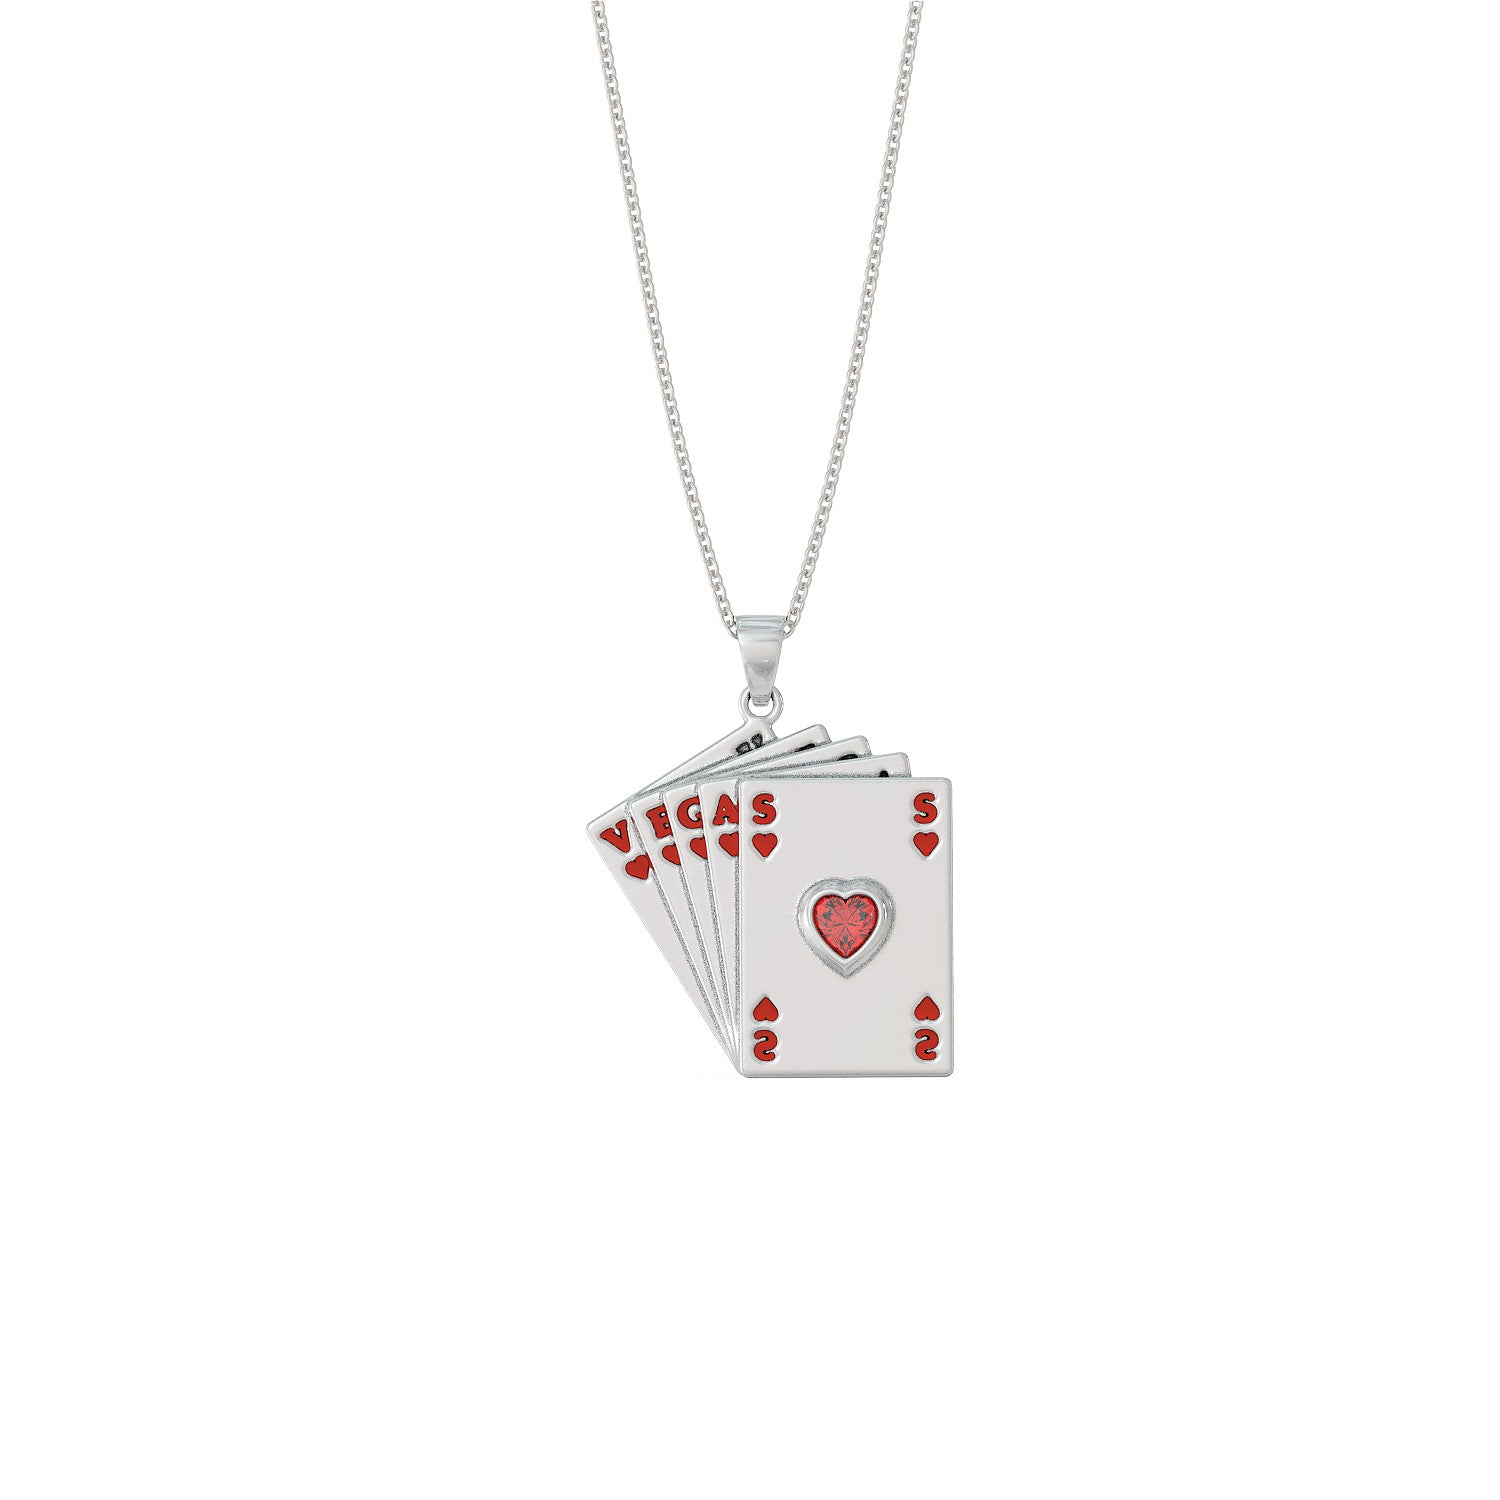 Vegas Love Necklace